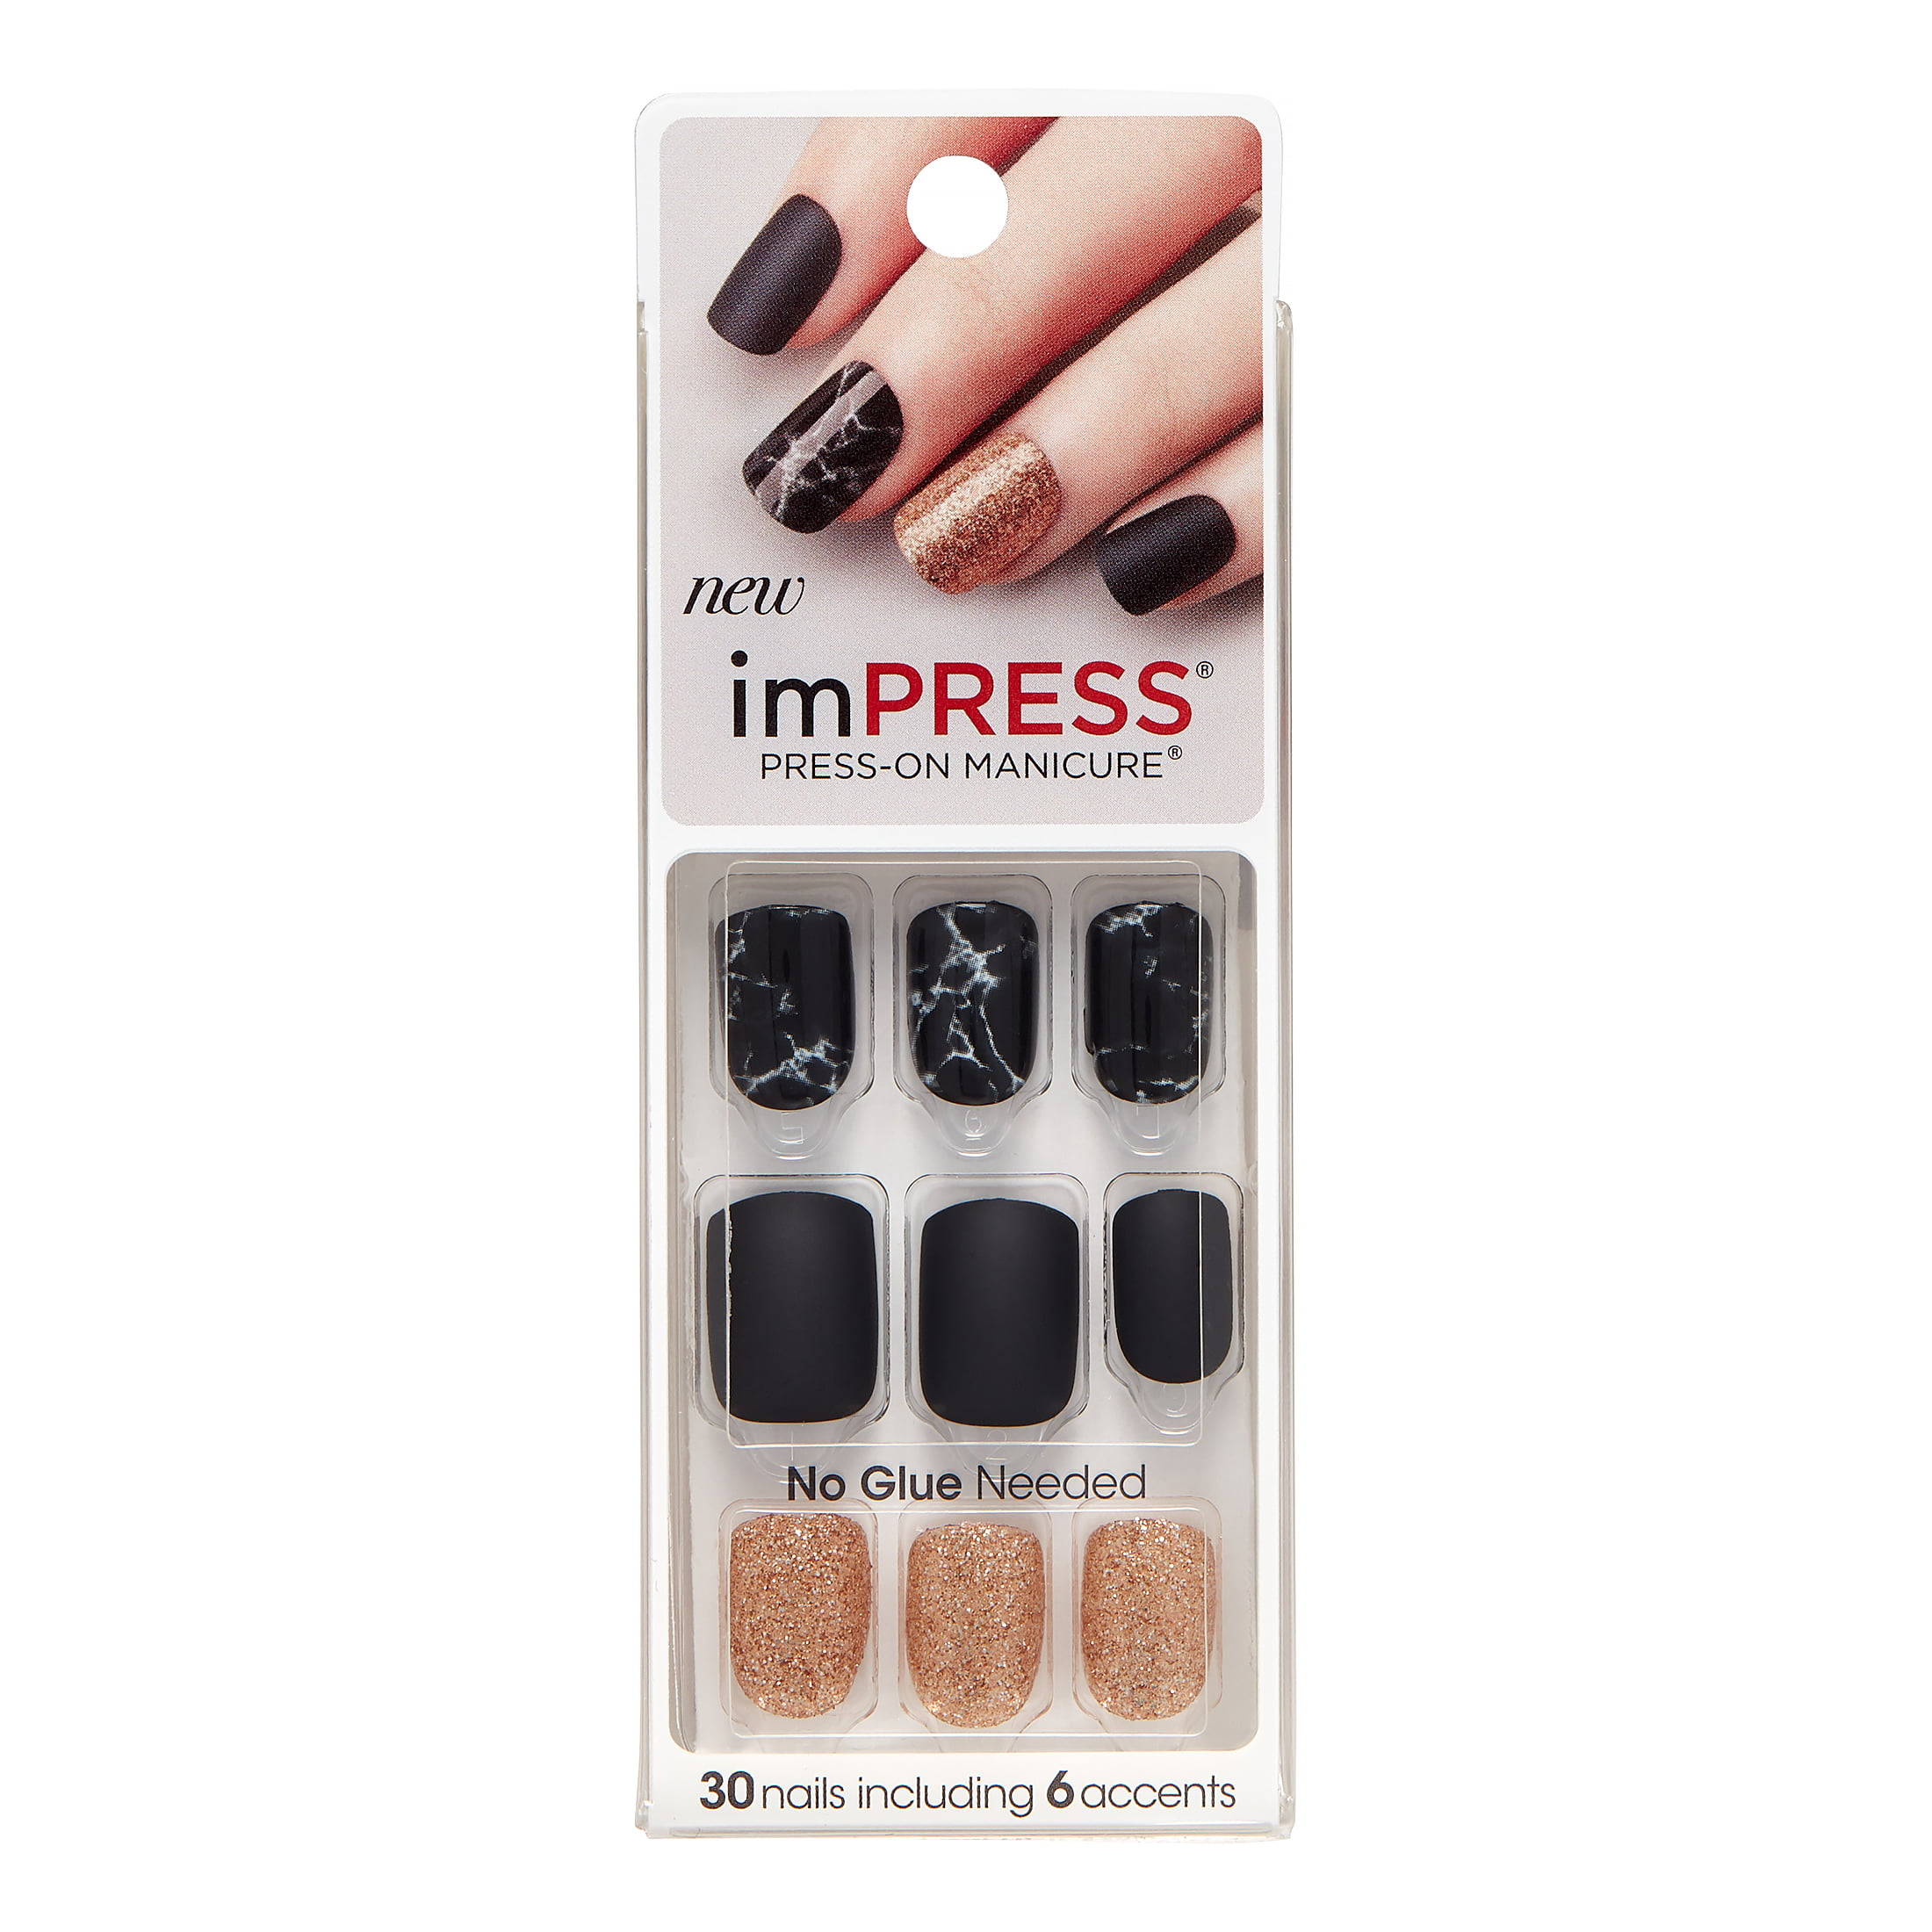 ImPRESS Press-on Nails Gel Manicure - Yeah Boy